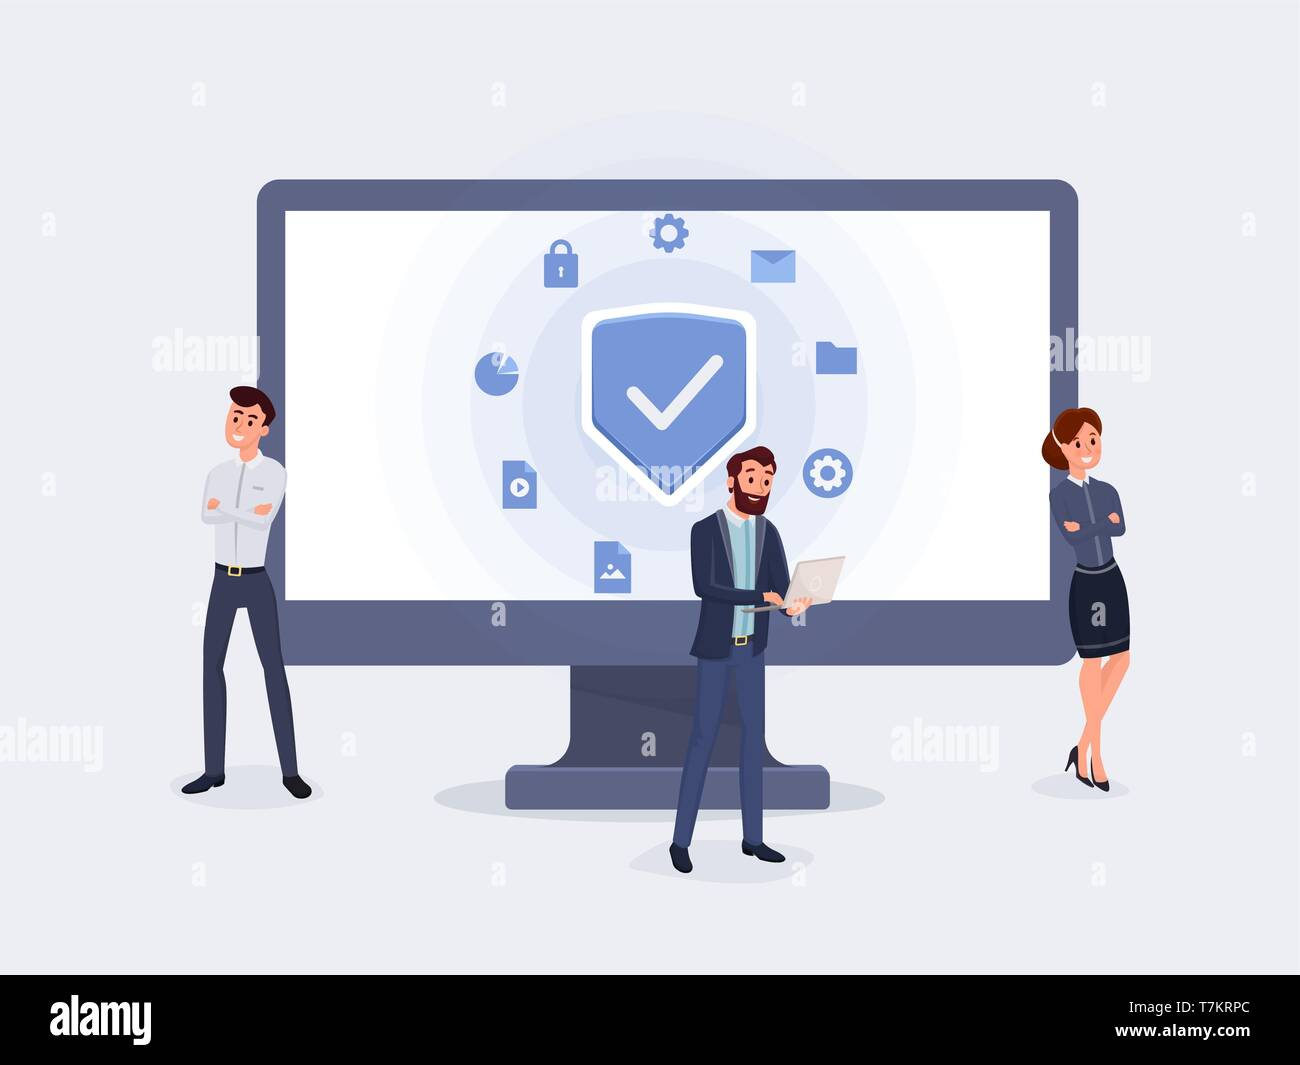 Business people with protection screen. People protect their data on device flat design vector illustration. Use for landing page, web or mobile app, banner. Secure data concept - Stock Image